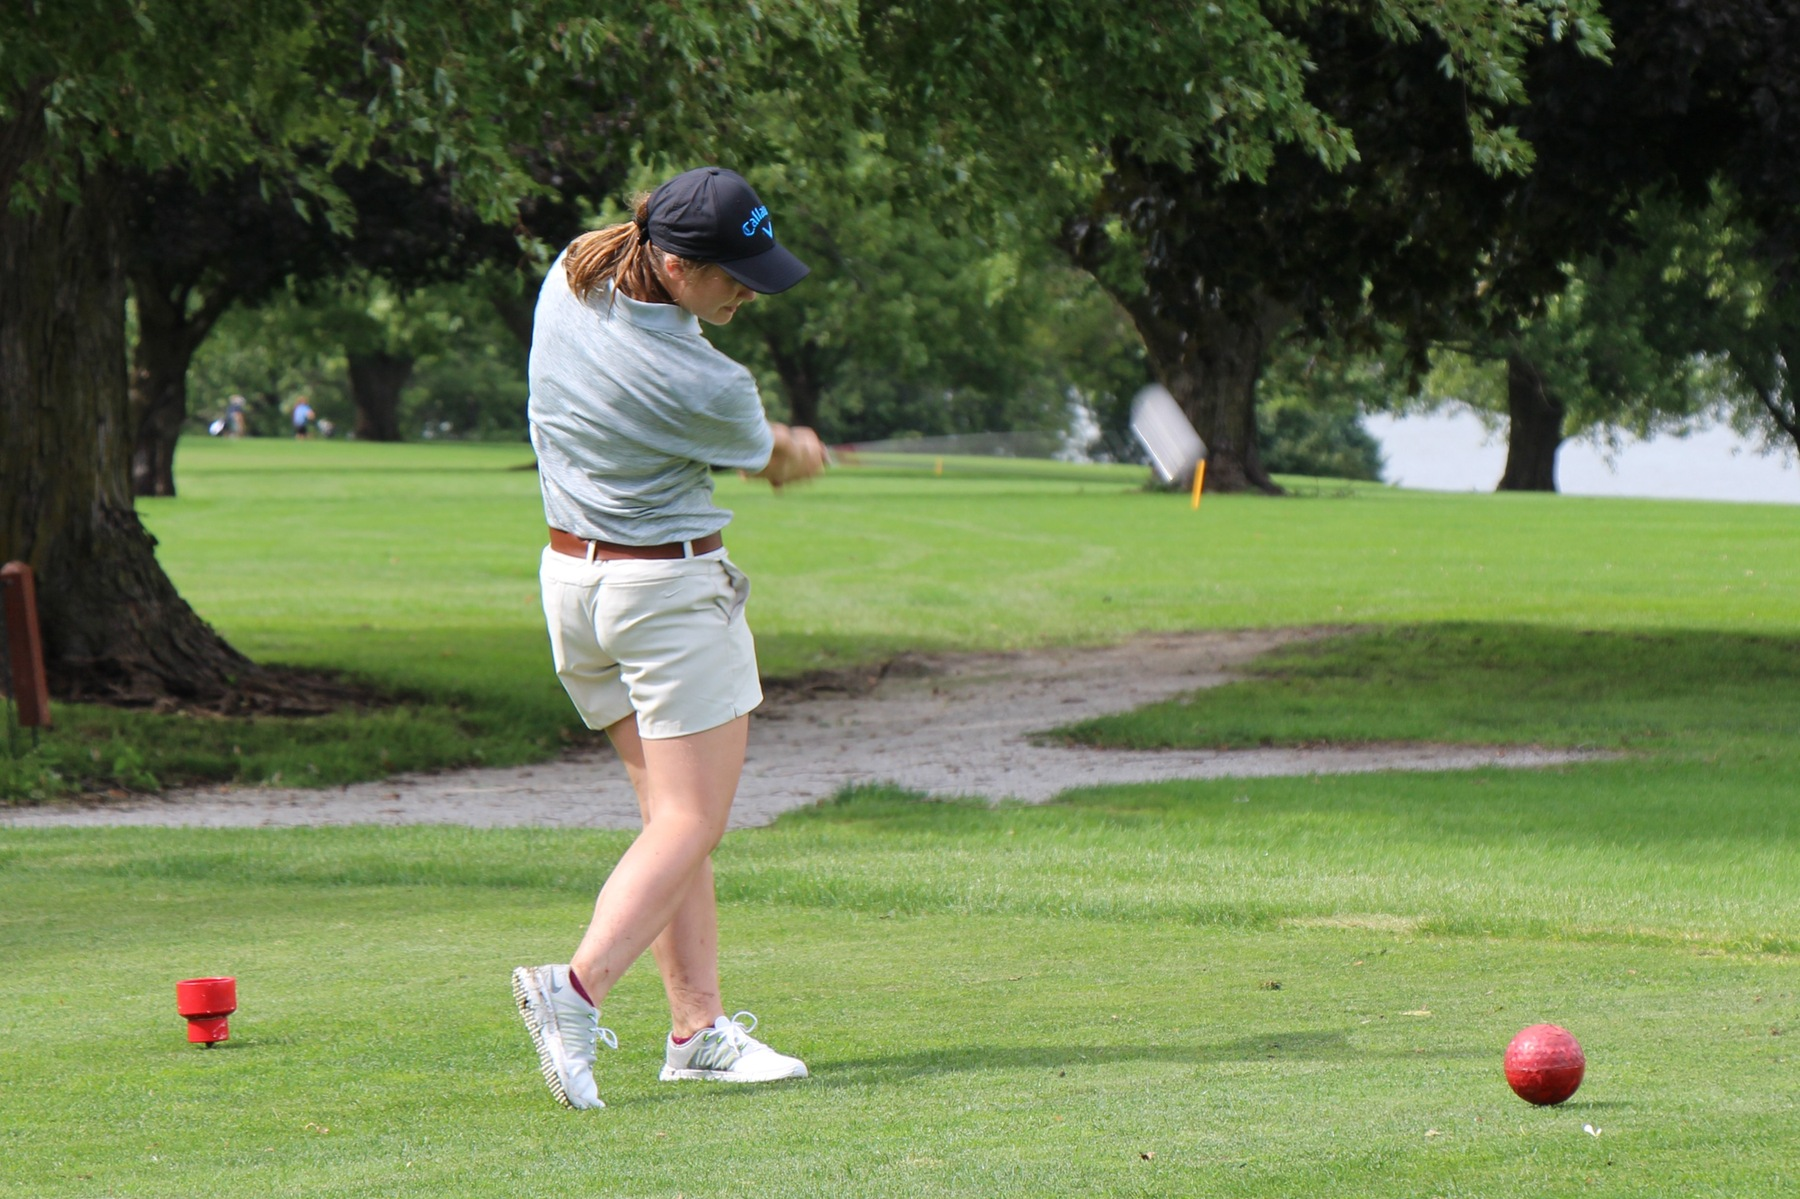 Freshman from Lenox, Iowa, Katelyn Belding teeing off for the Spartans.